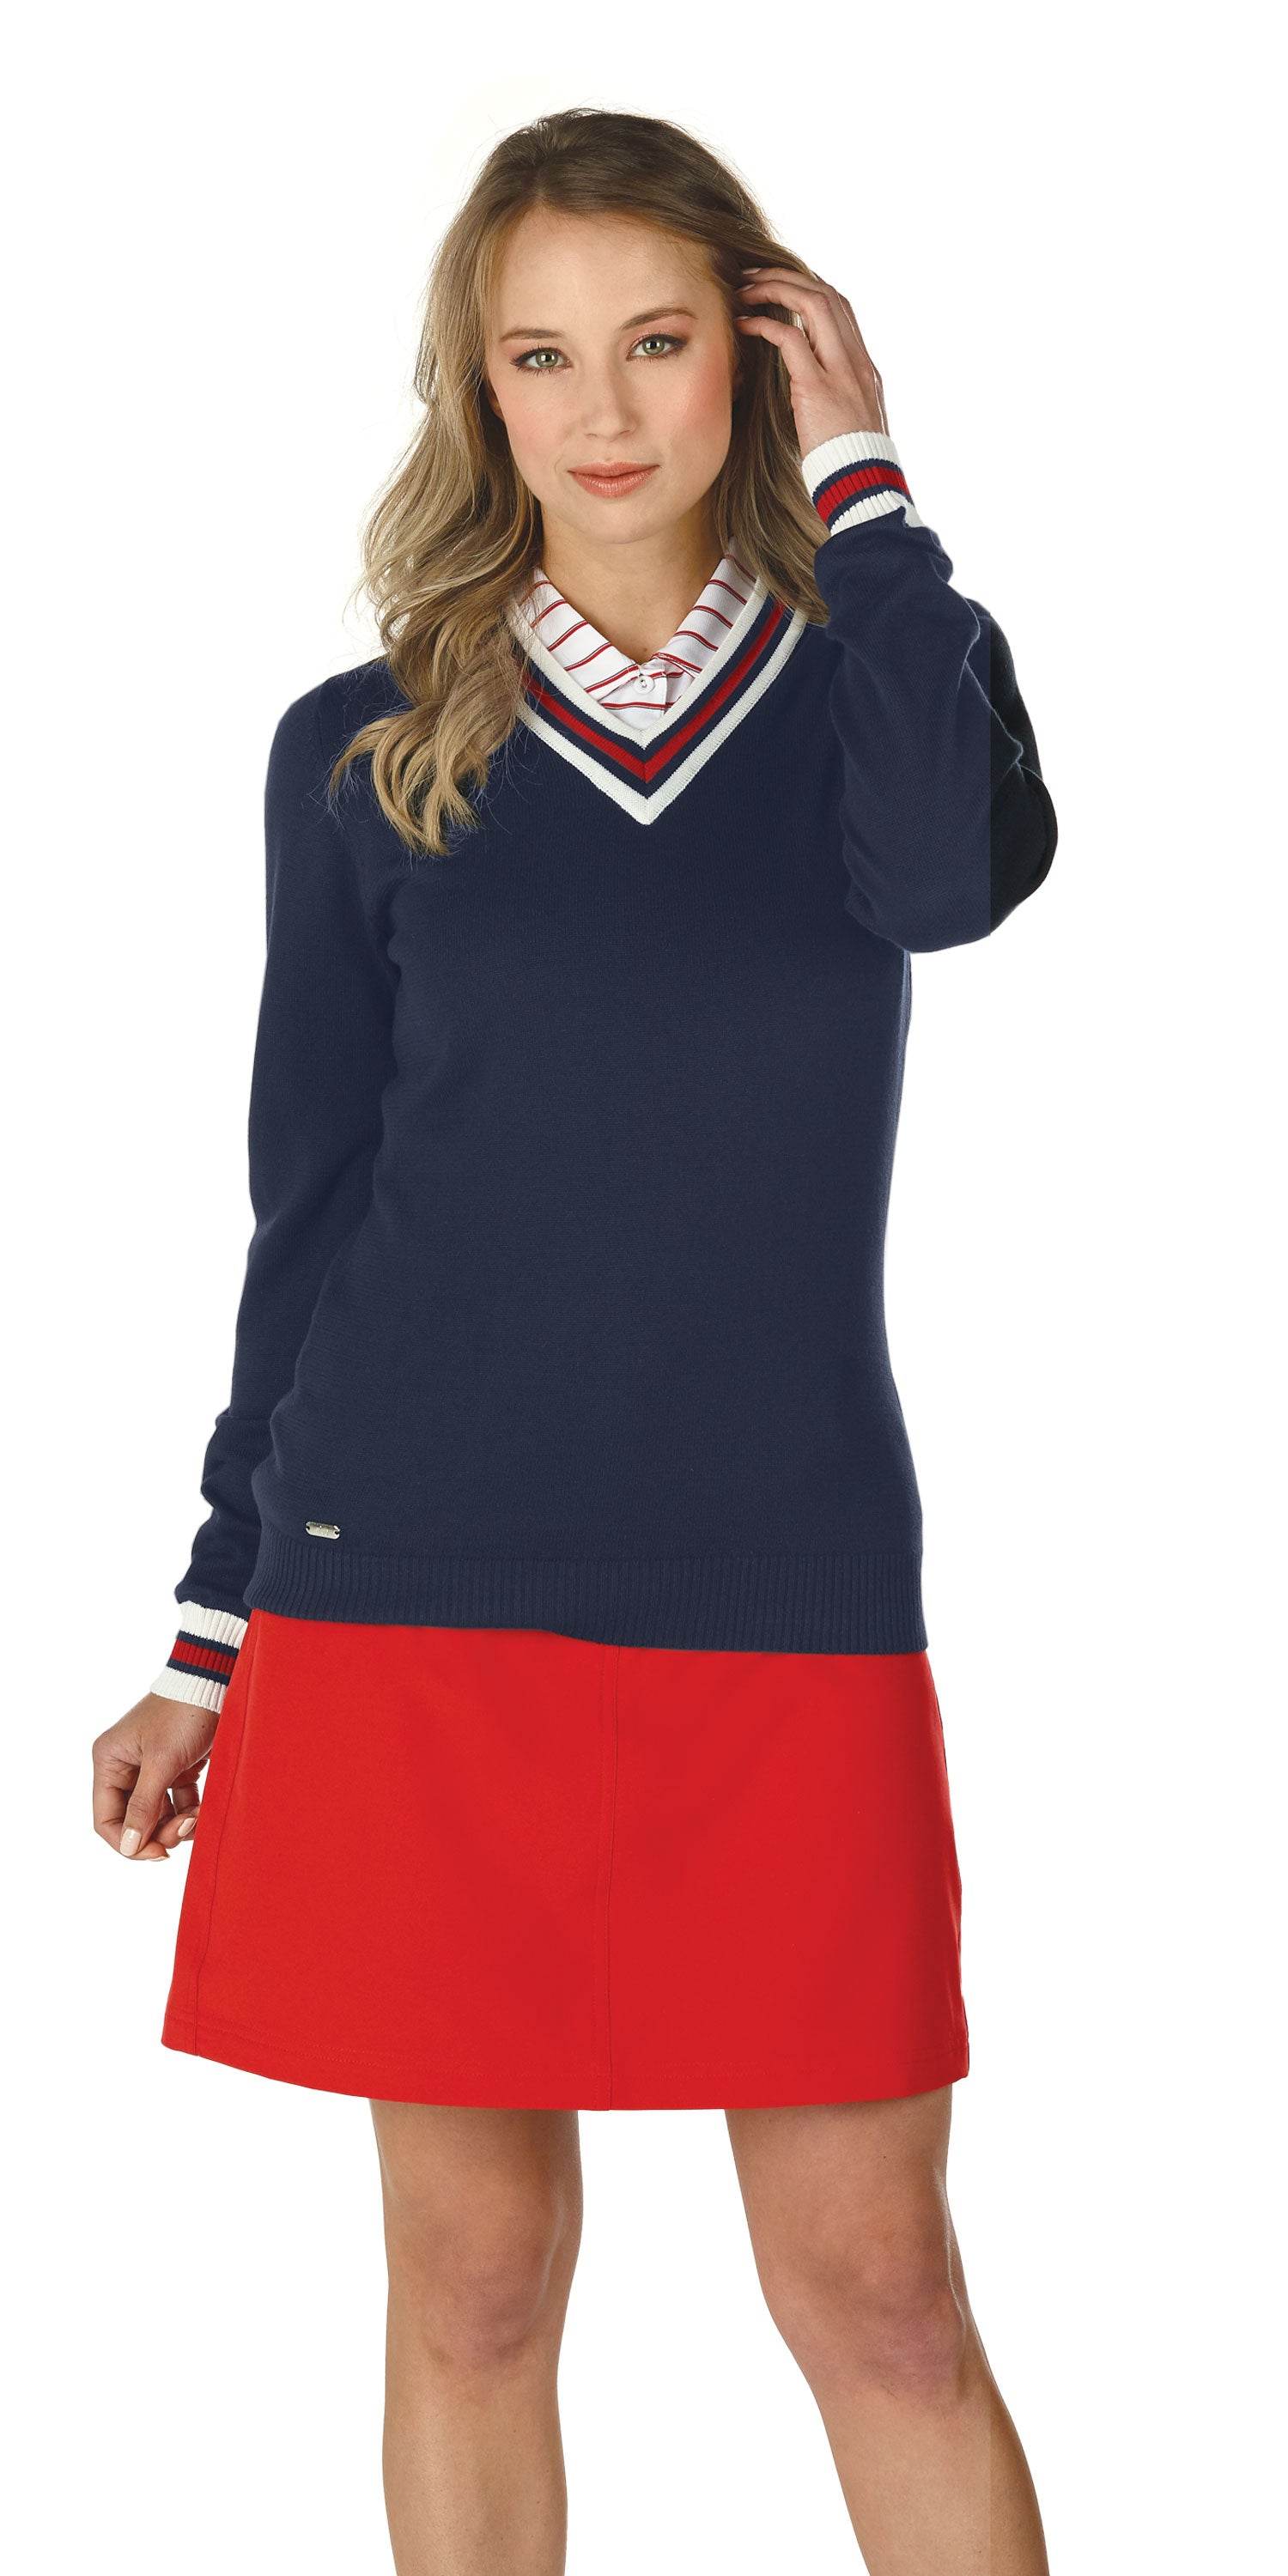 AMERICANA - ALBA POLO - ANGEL SWEATER - MARIKA SKORT